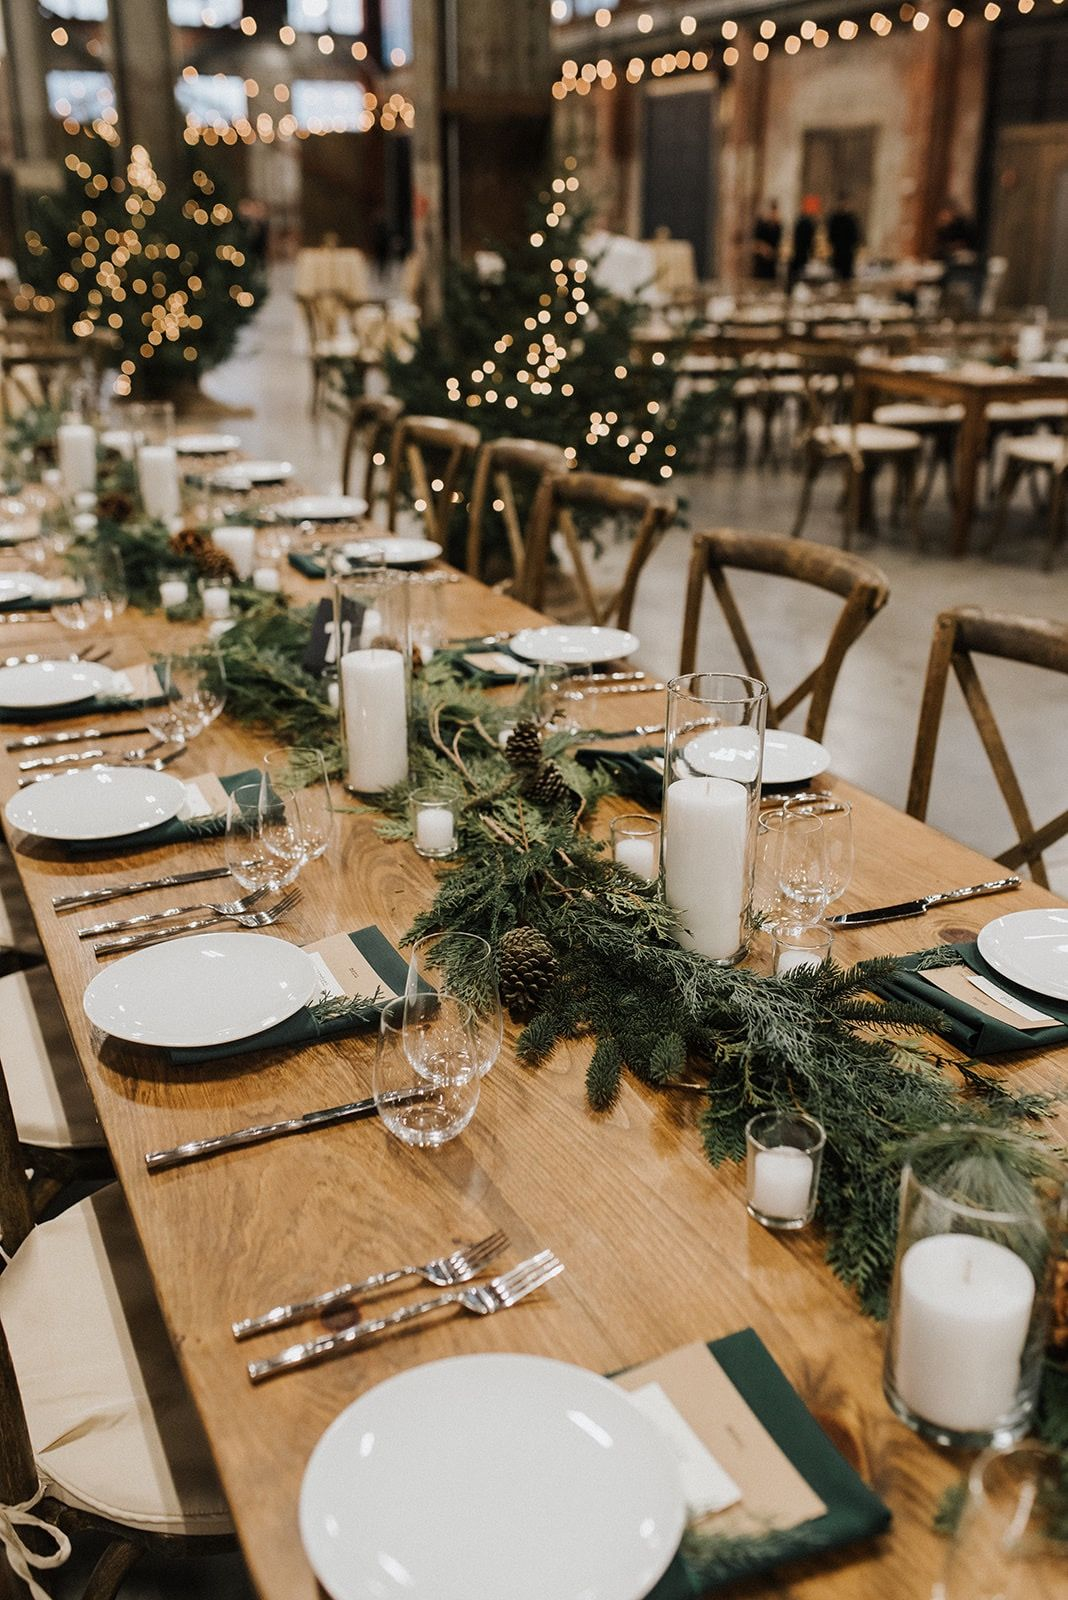 Maine Seasons Events New Year's Eve Industrial Wedding-Christen & Micah — Maine Seasons Events & Rentals